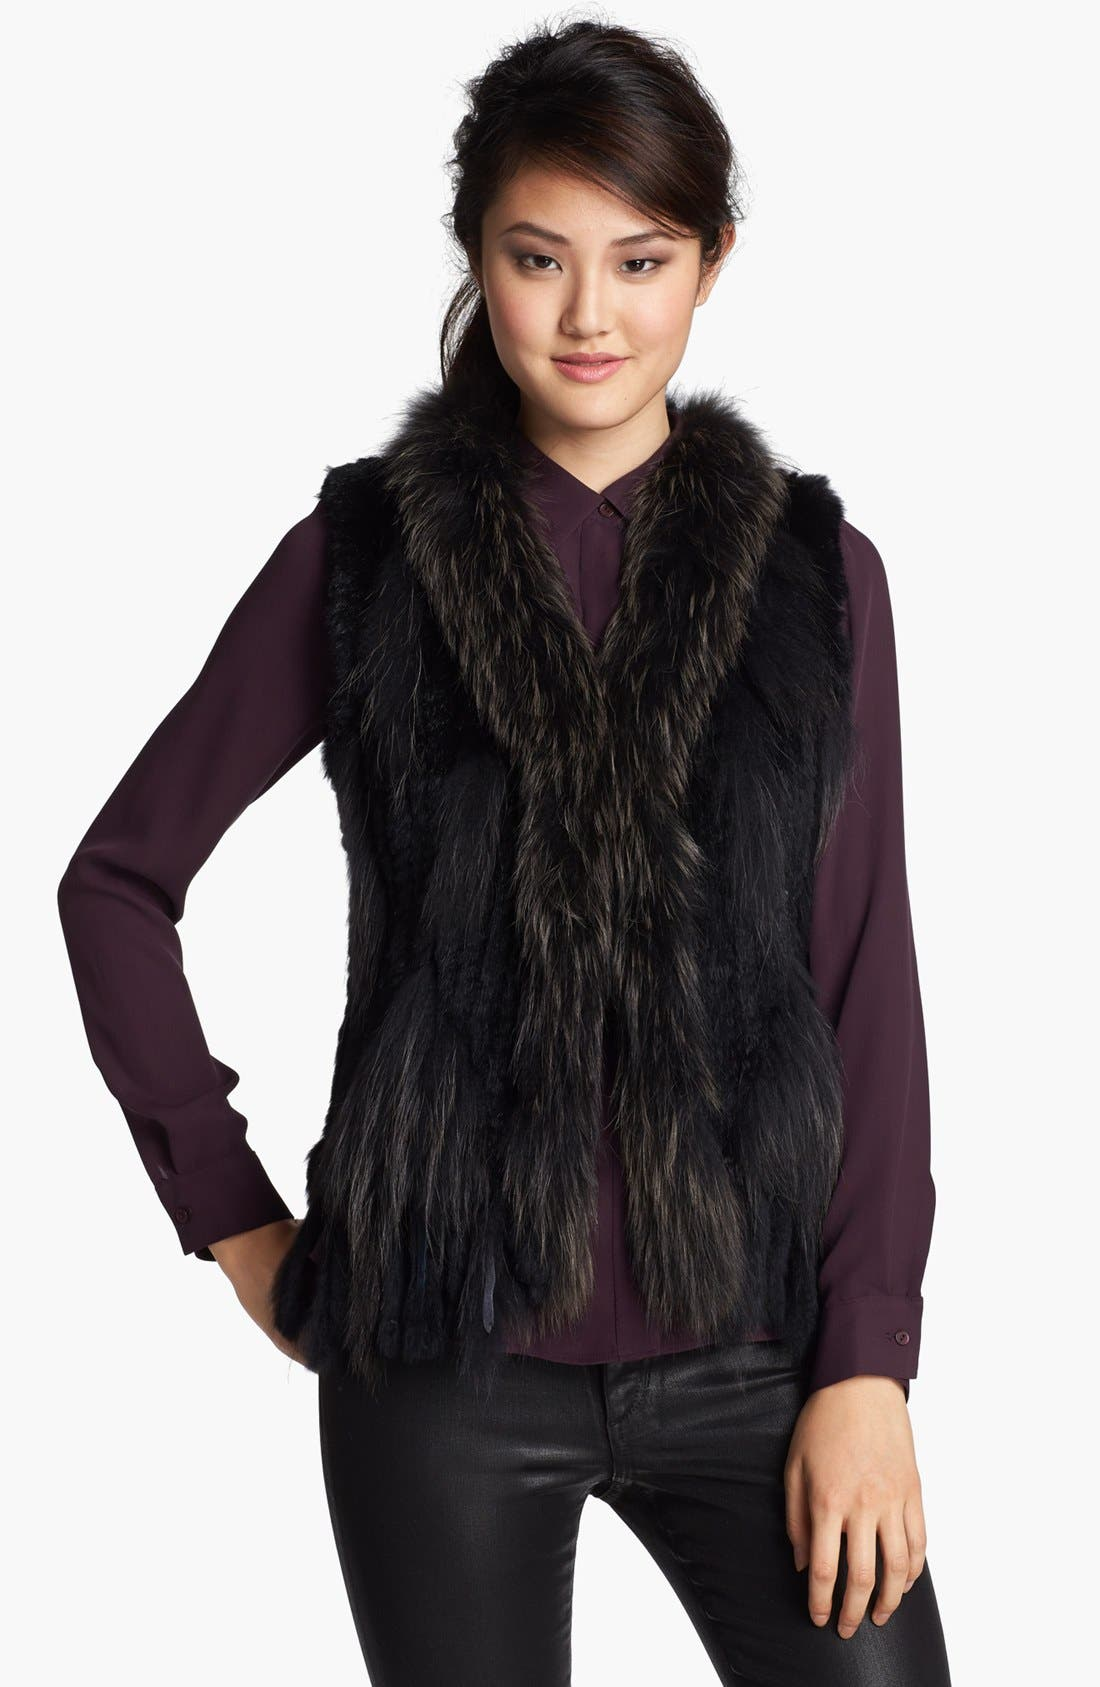 Genuine Rabbit & Raccoon Fur Vest,                             Main thumbnail 1, color,                             001